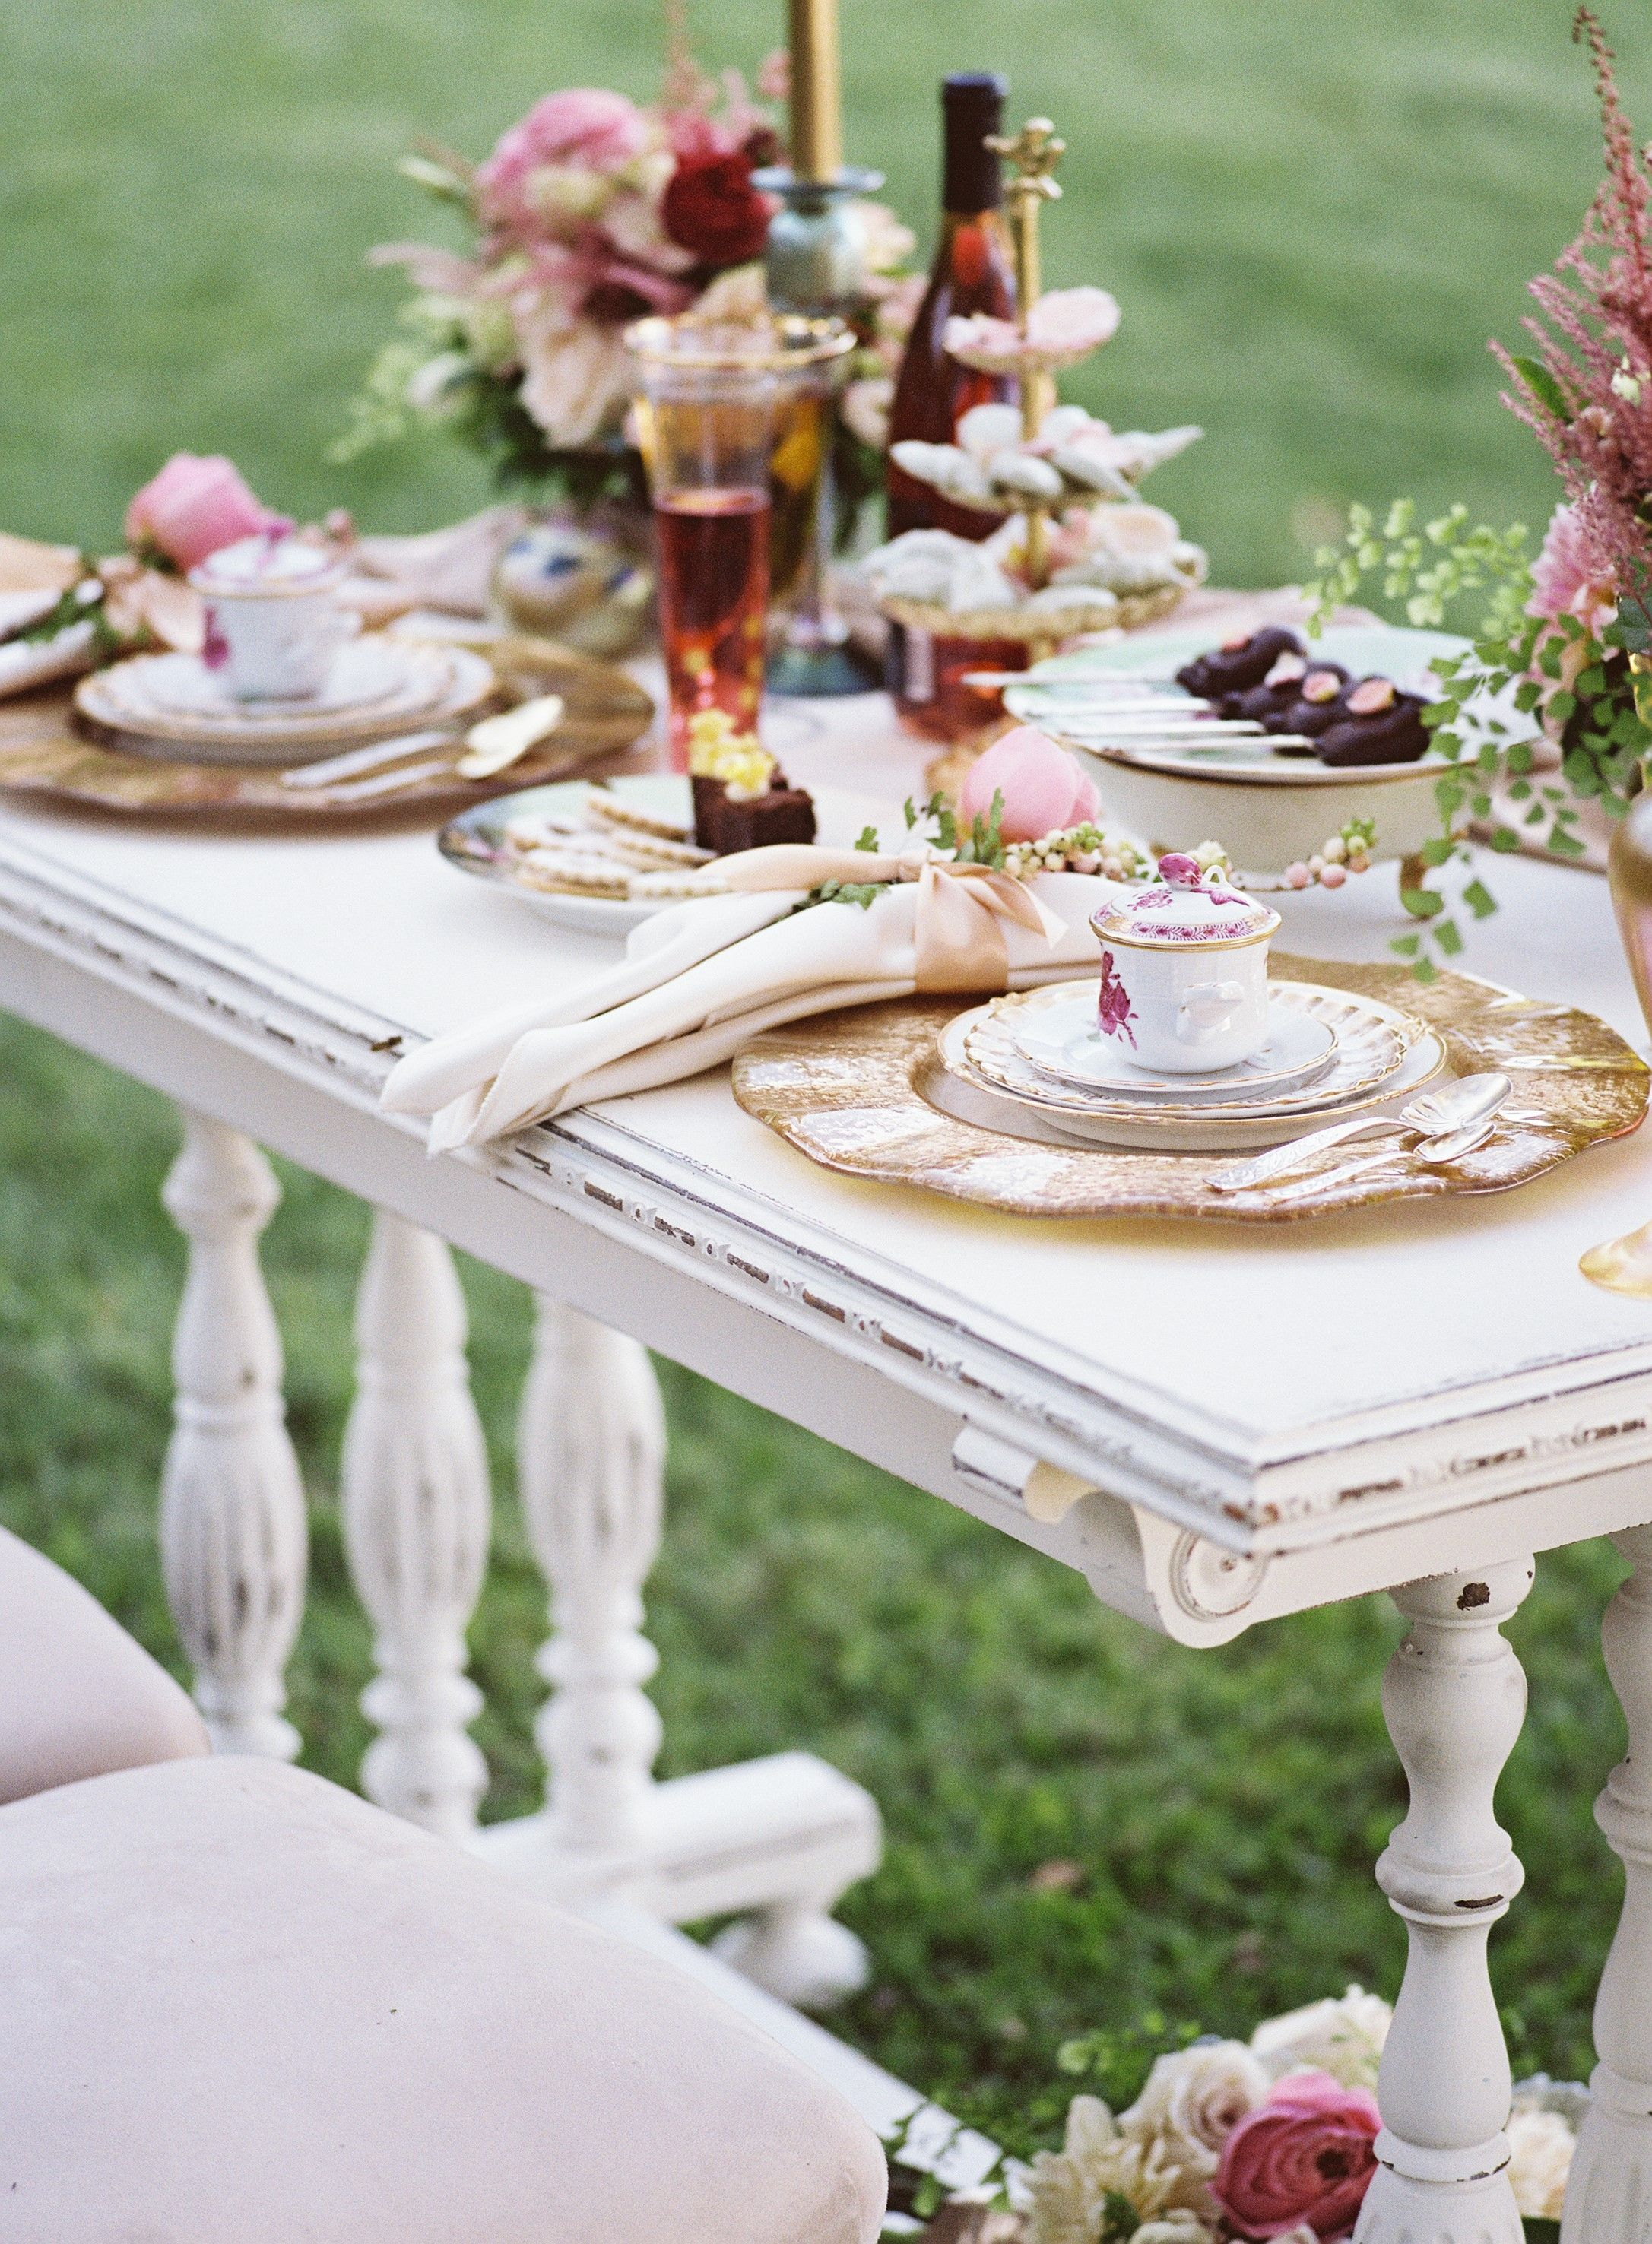 Bride And Groom Table, Vintage Sweetheart Table,  Https://partypleasersblog.wordpress.com, Http://instagram.com/partypleasers,